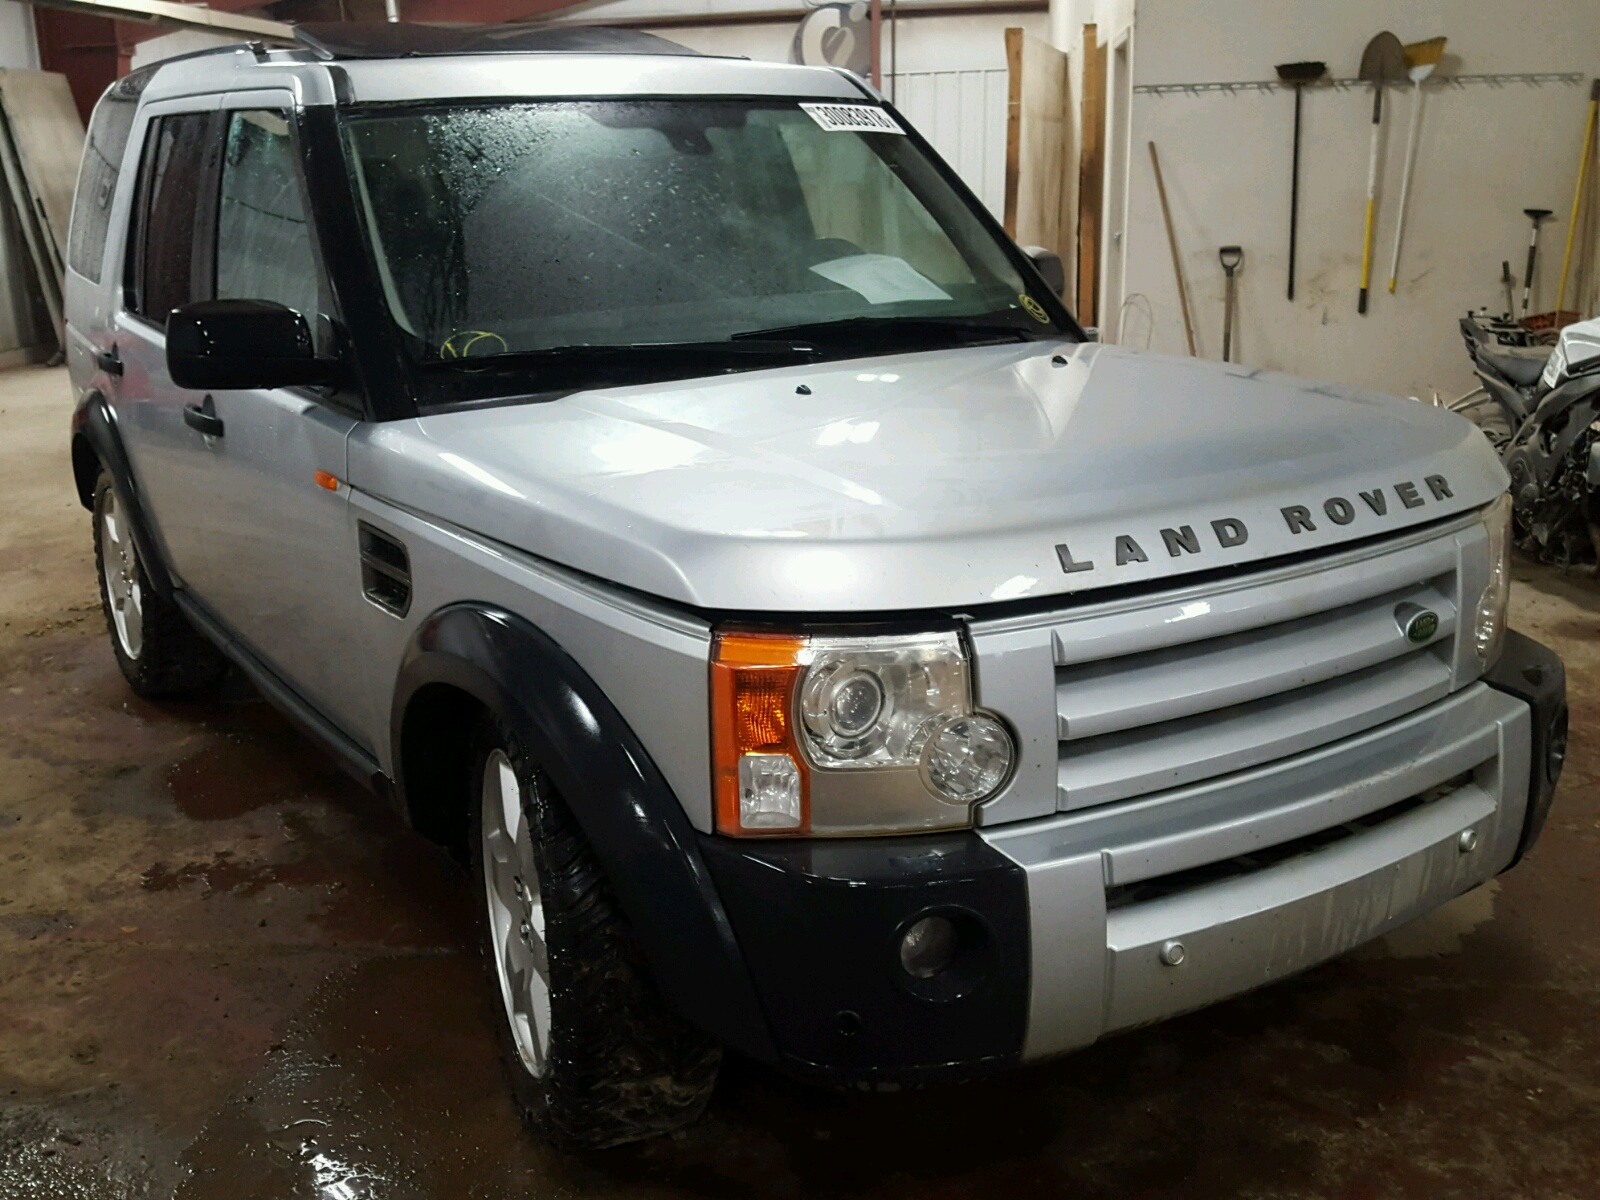 landrover sale angle for on auctions of view rover lot salvage carfinder online hse en land al in birmingham cert silver title copart auto